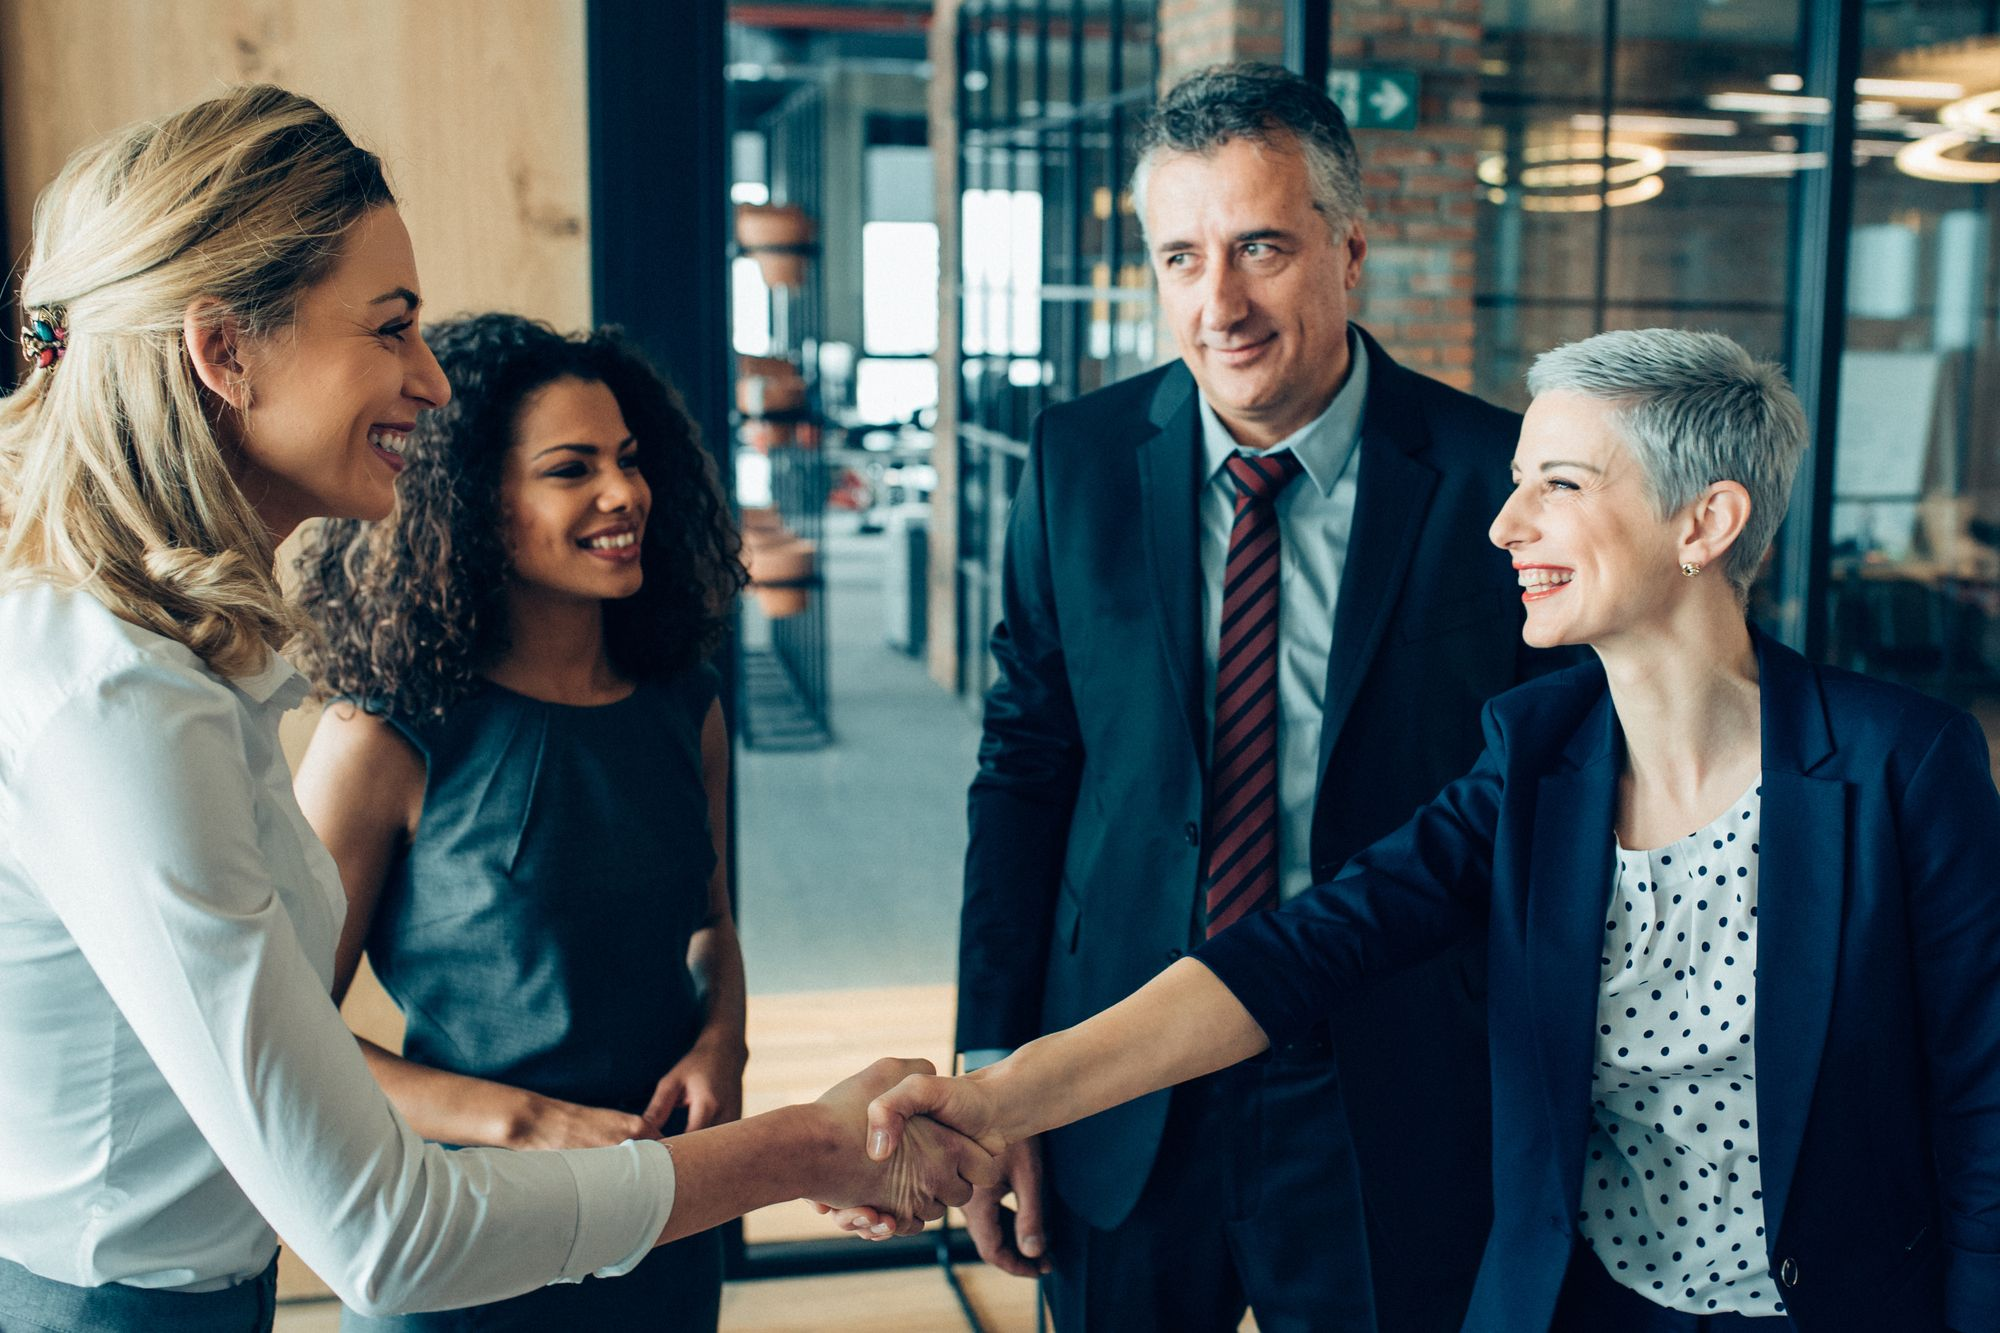 5 Ways to Hire the Best People for the Long Term